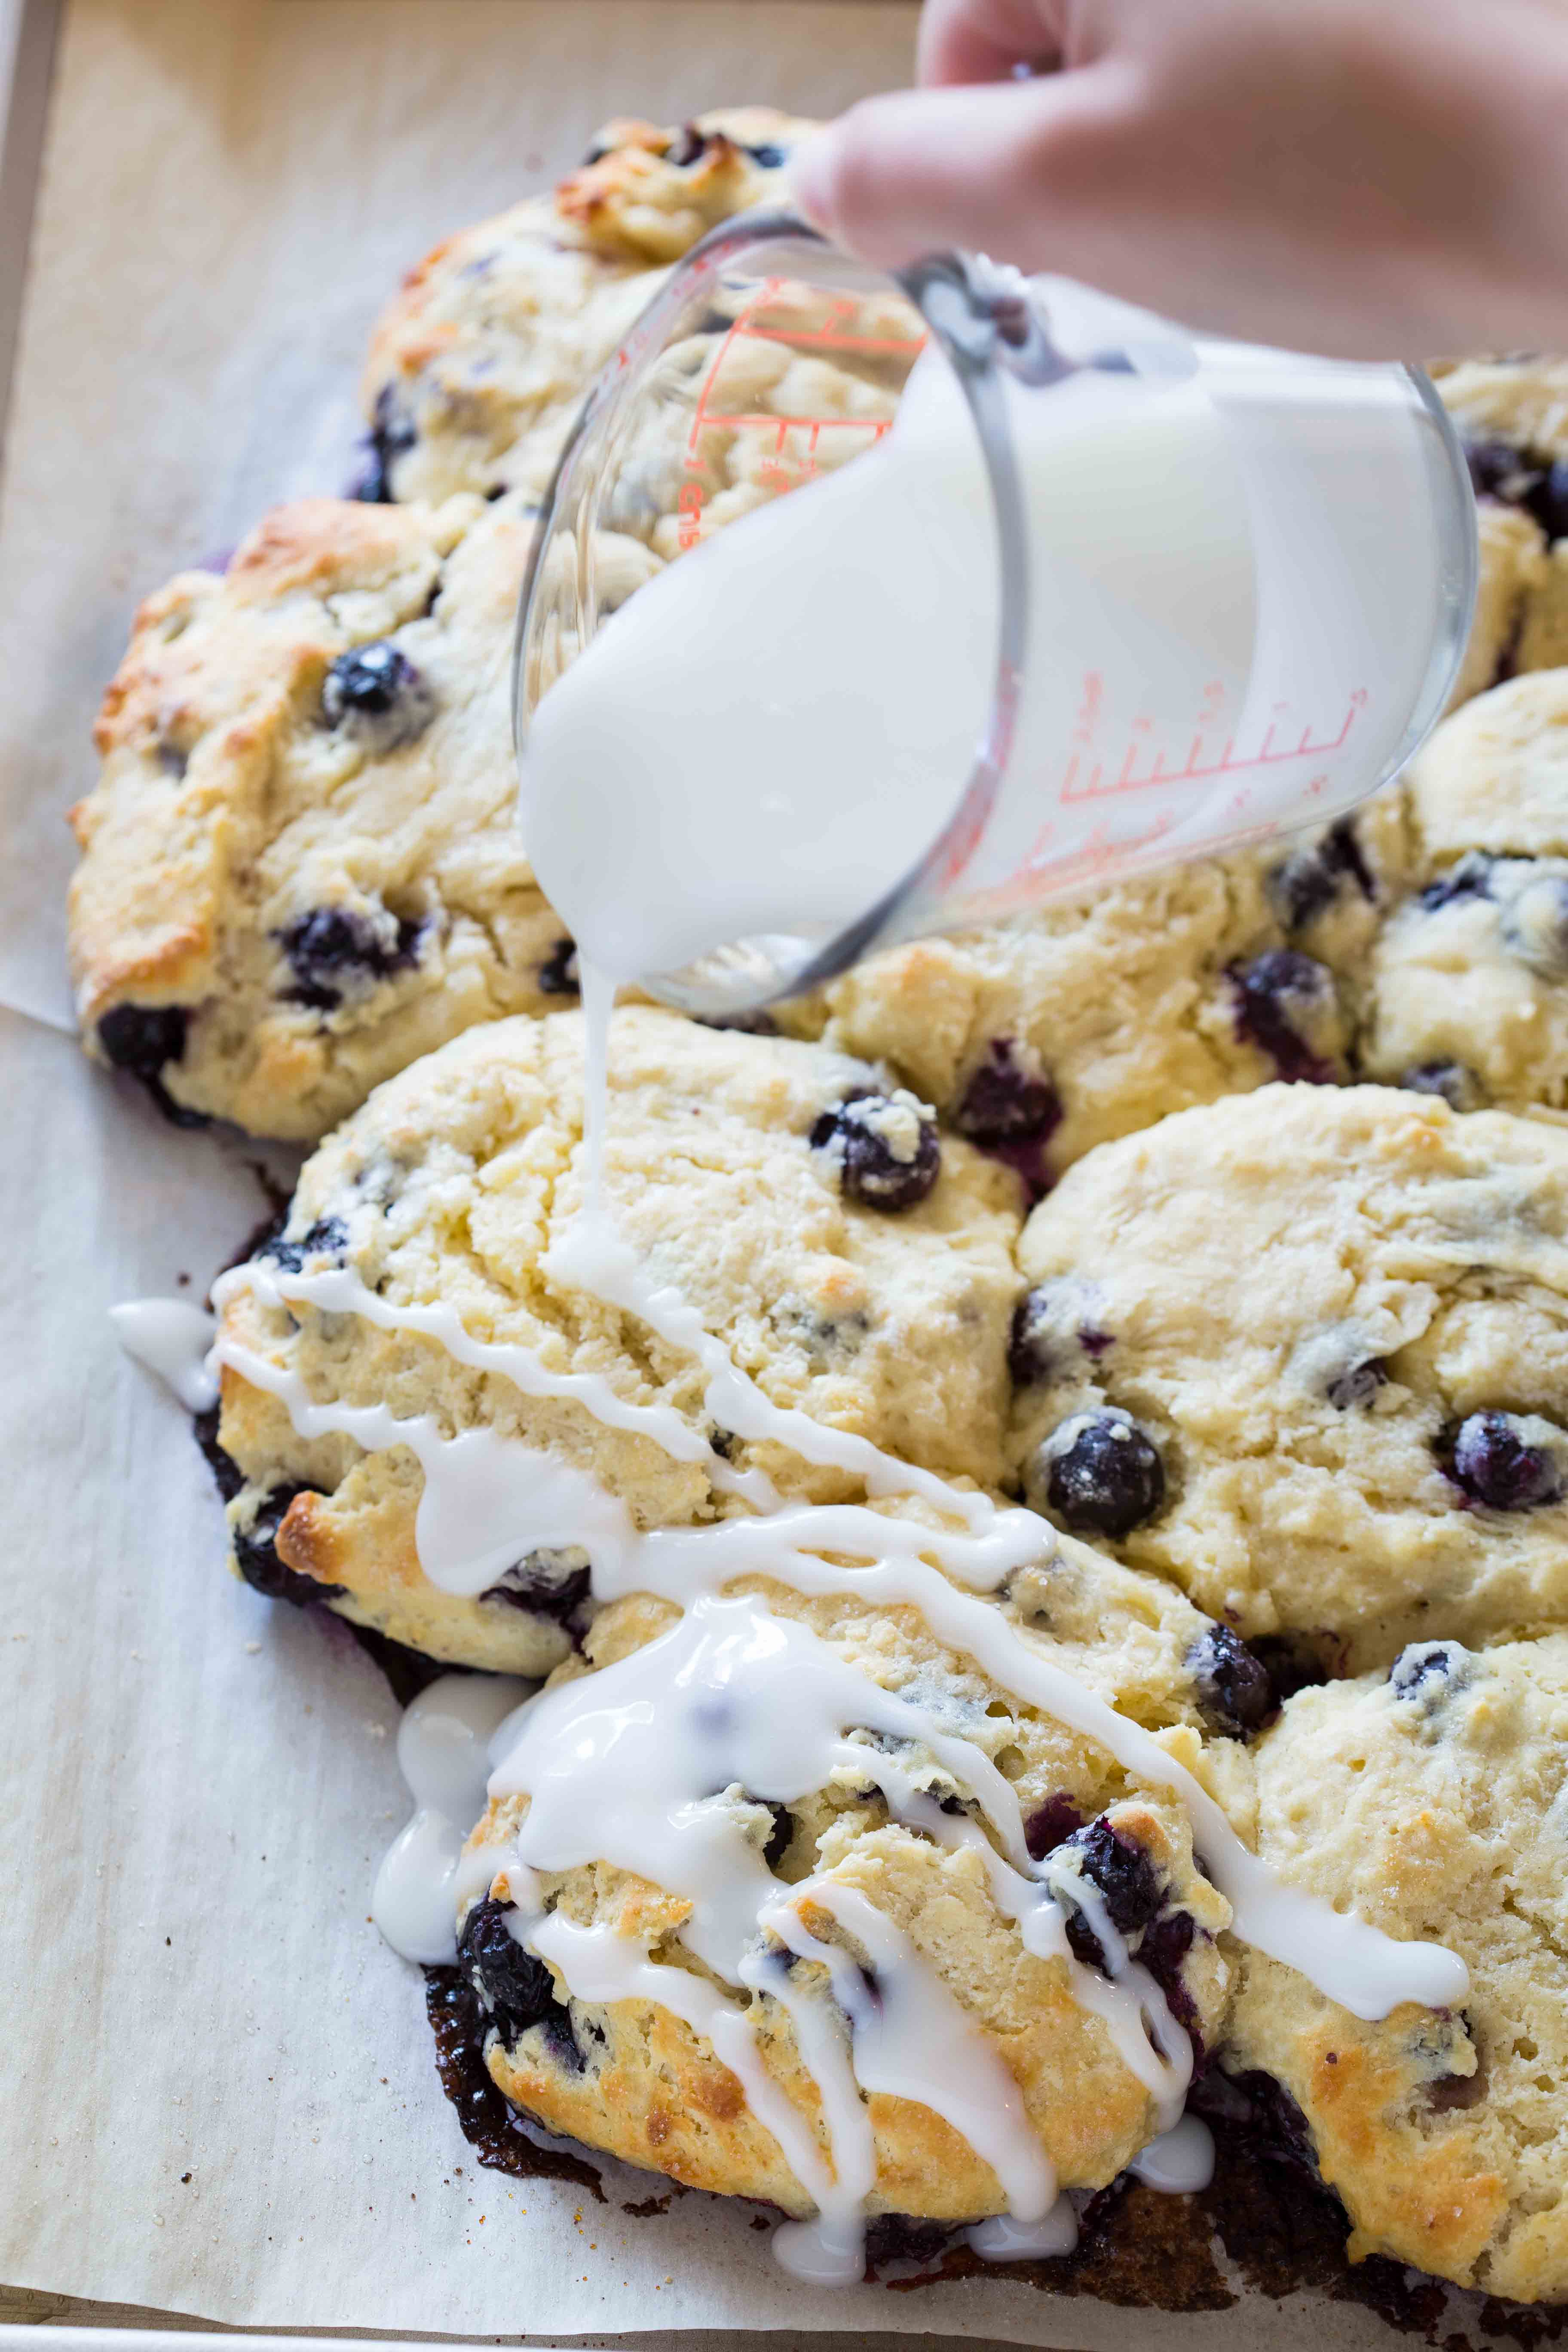 Blueberry Biscuits with Almond Glaze